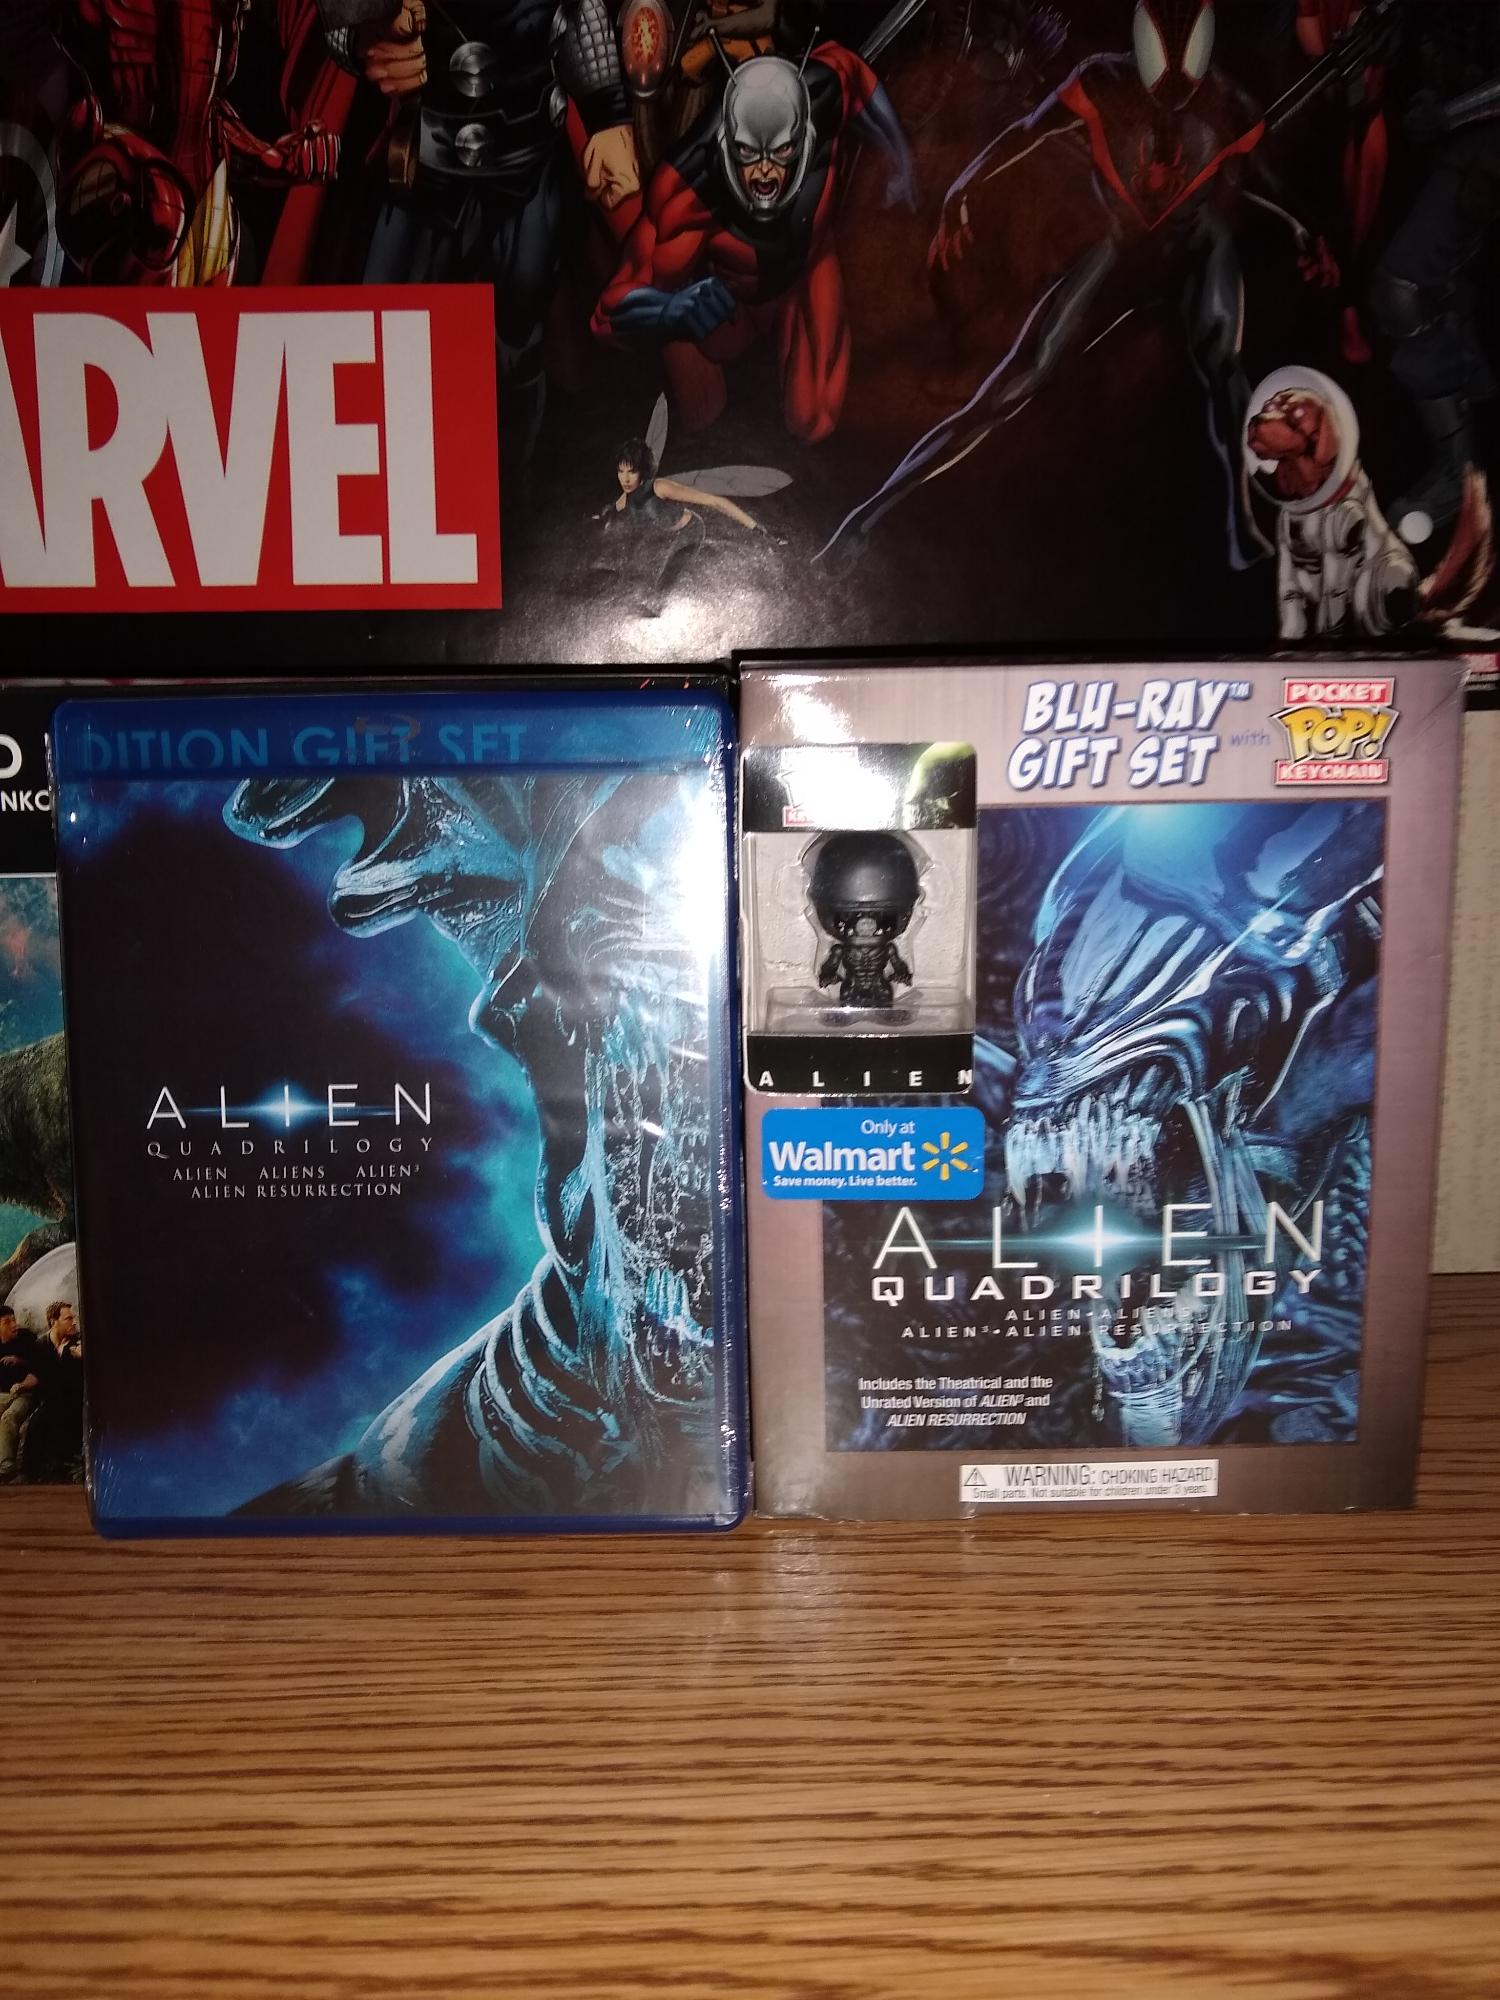 I Bought all 4 Alien Movie's on Blu-ray at Wal-Mart Today